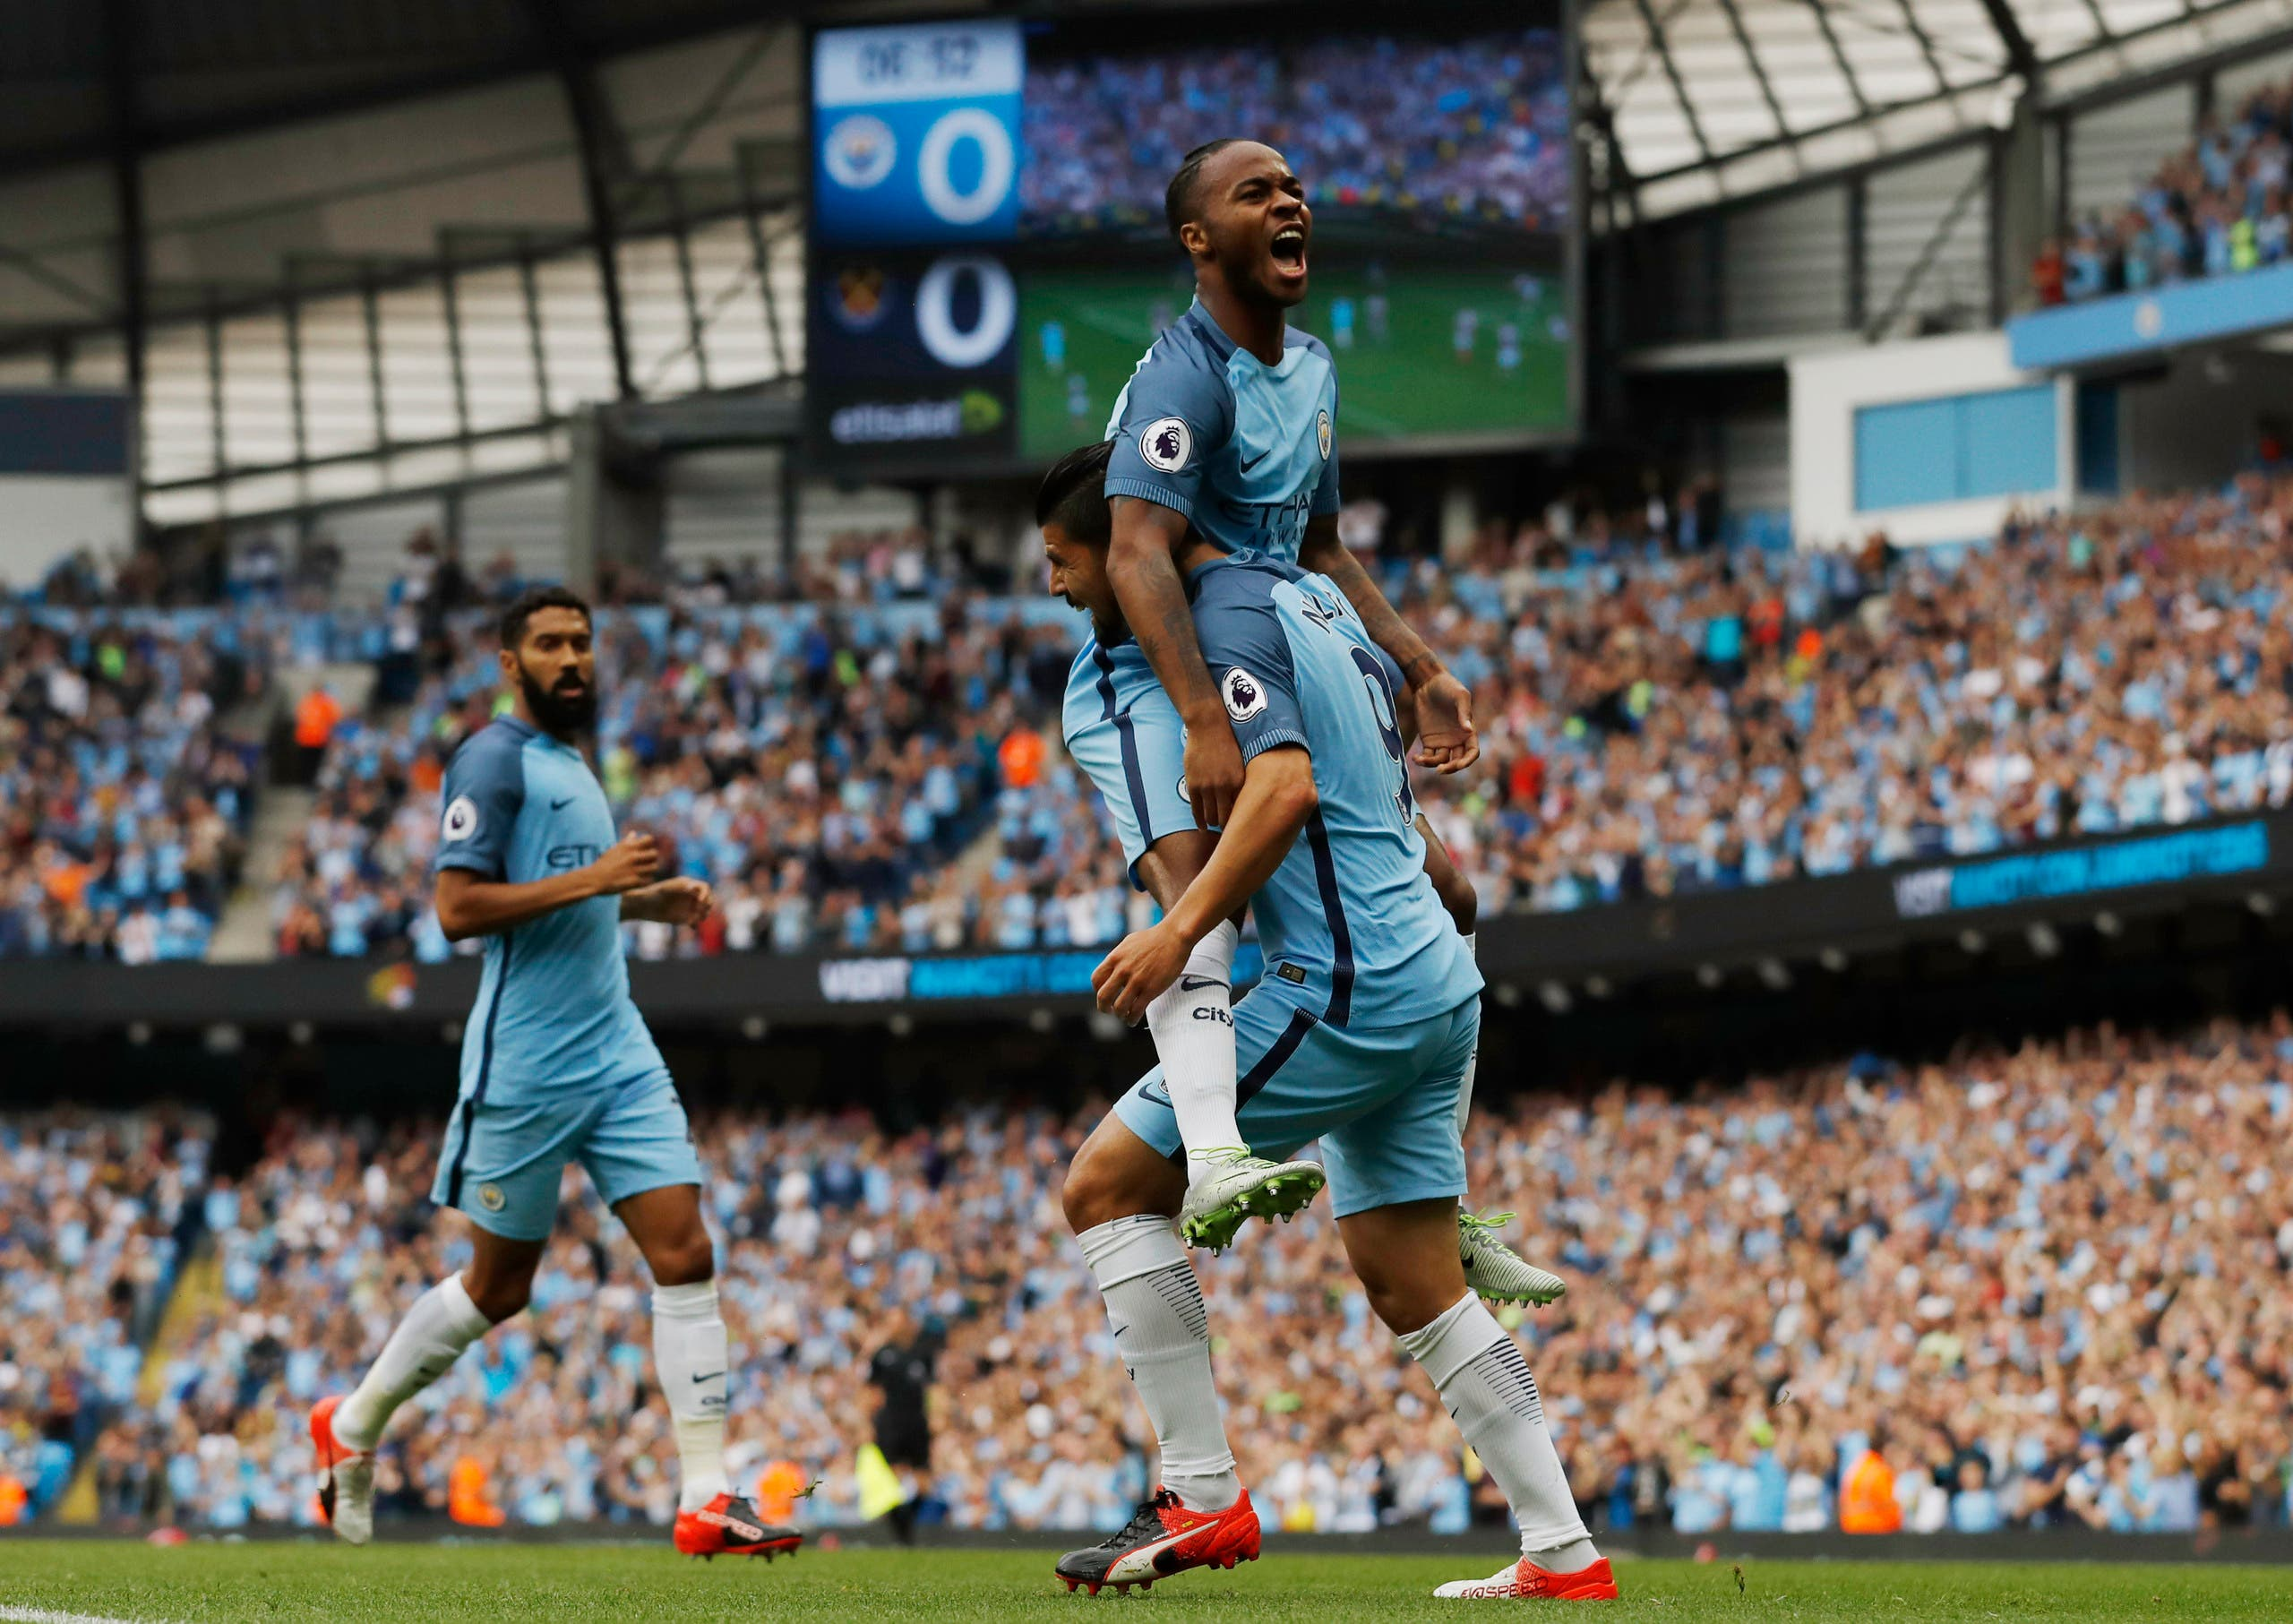 Manchester City's Raheem Sterling celebrates scoring their first goal with teammates. (Reuters)